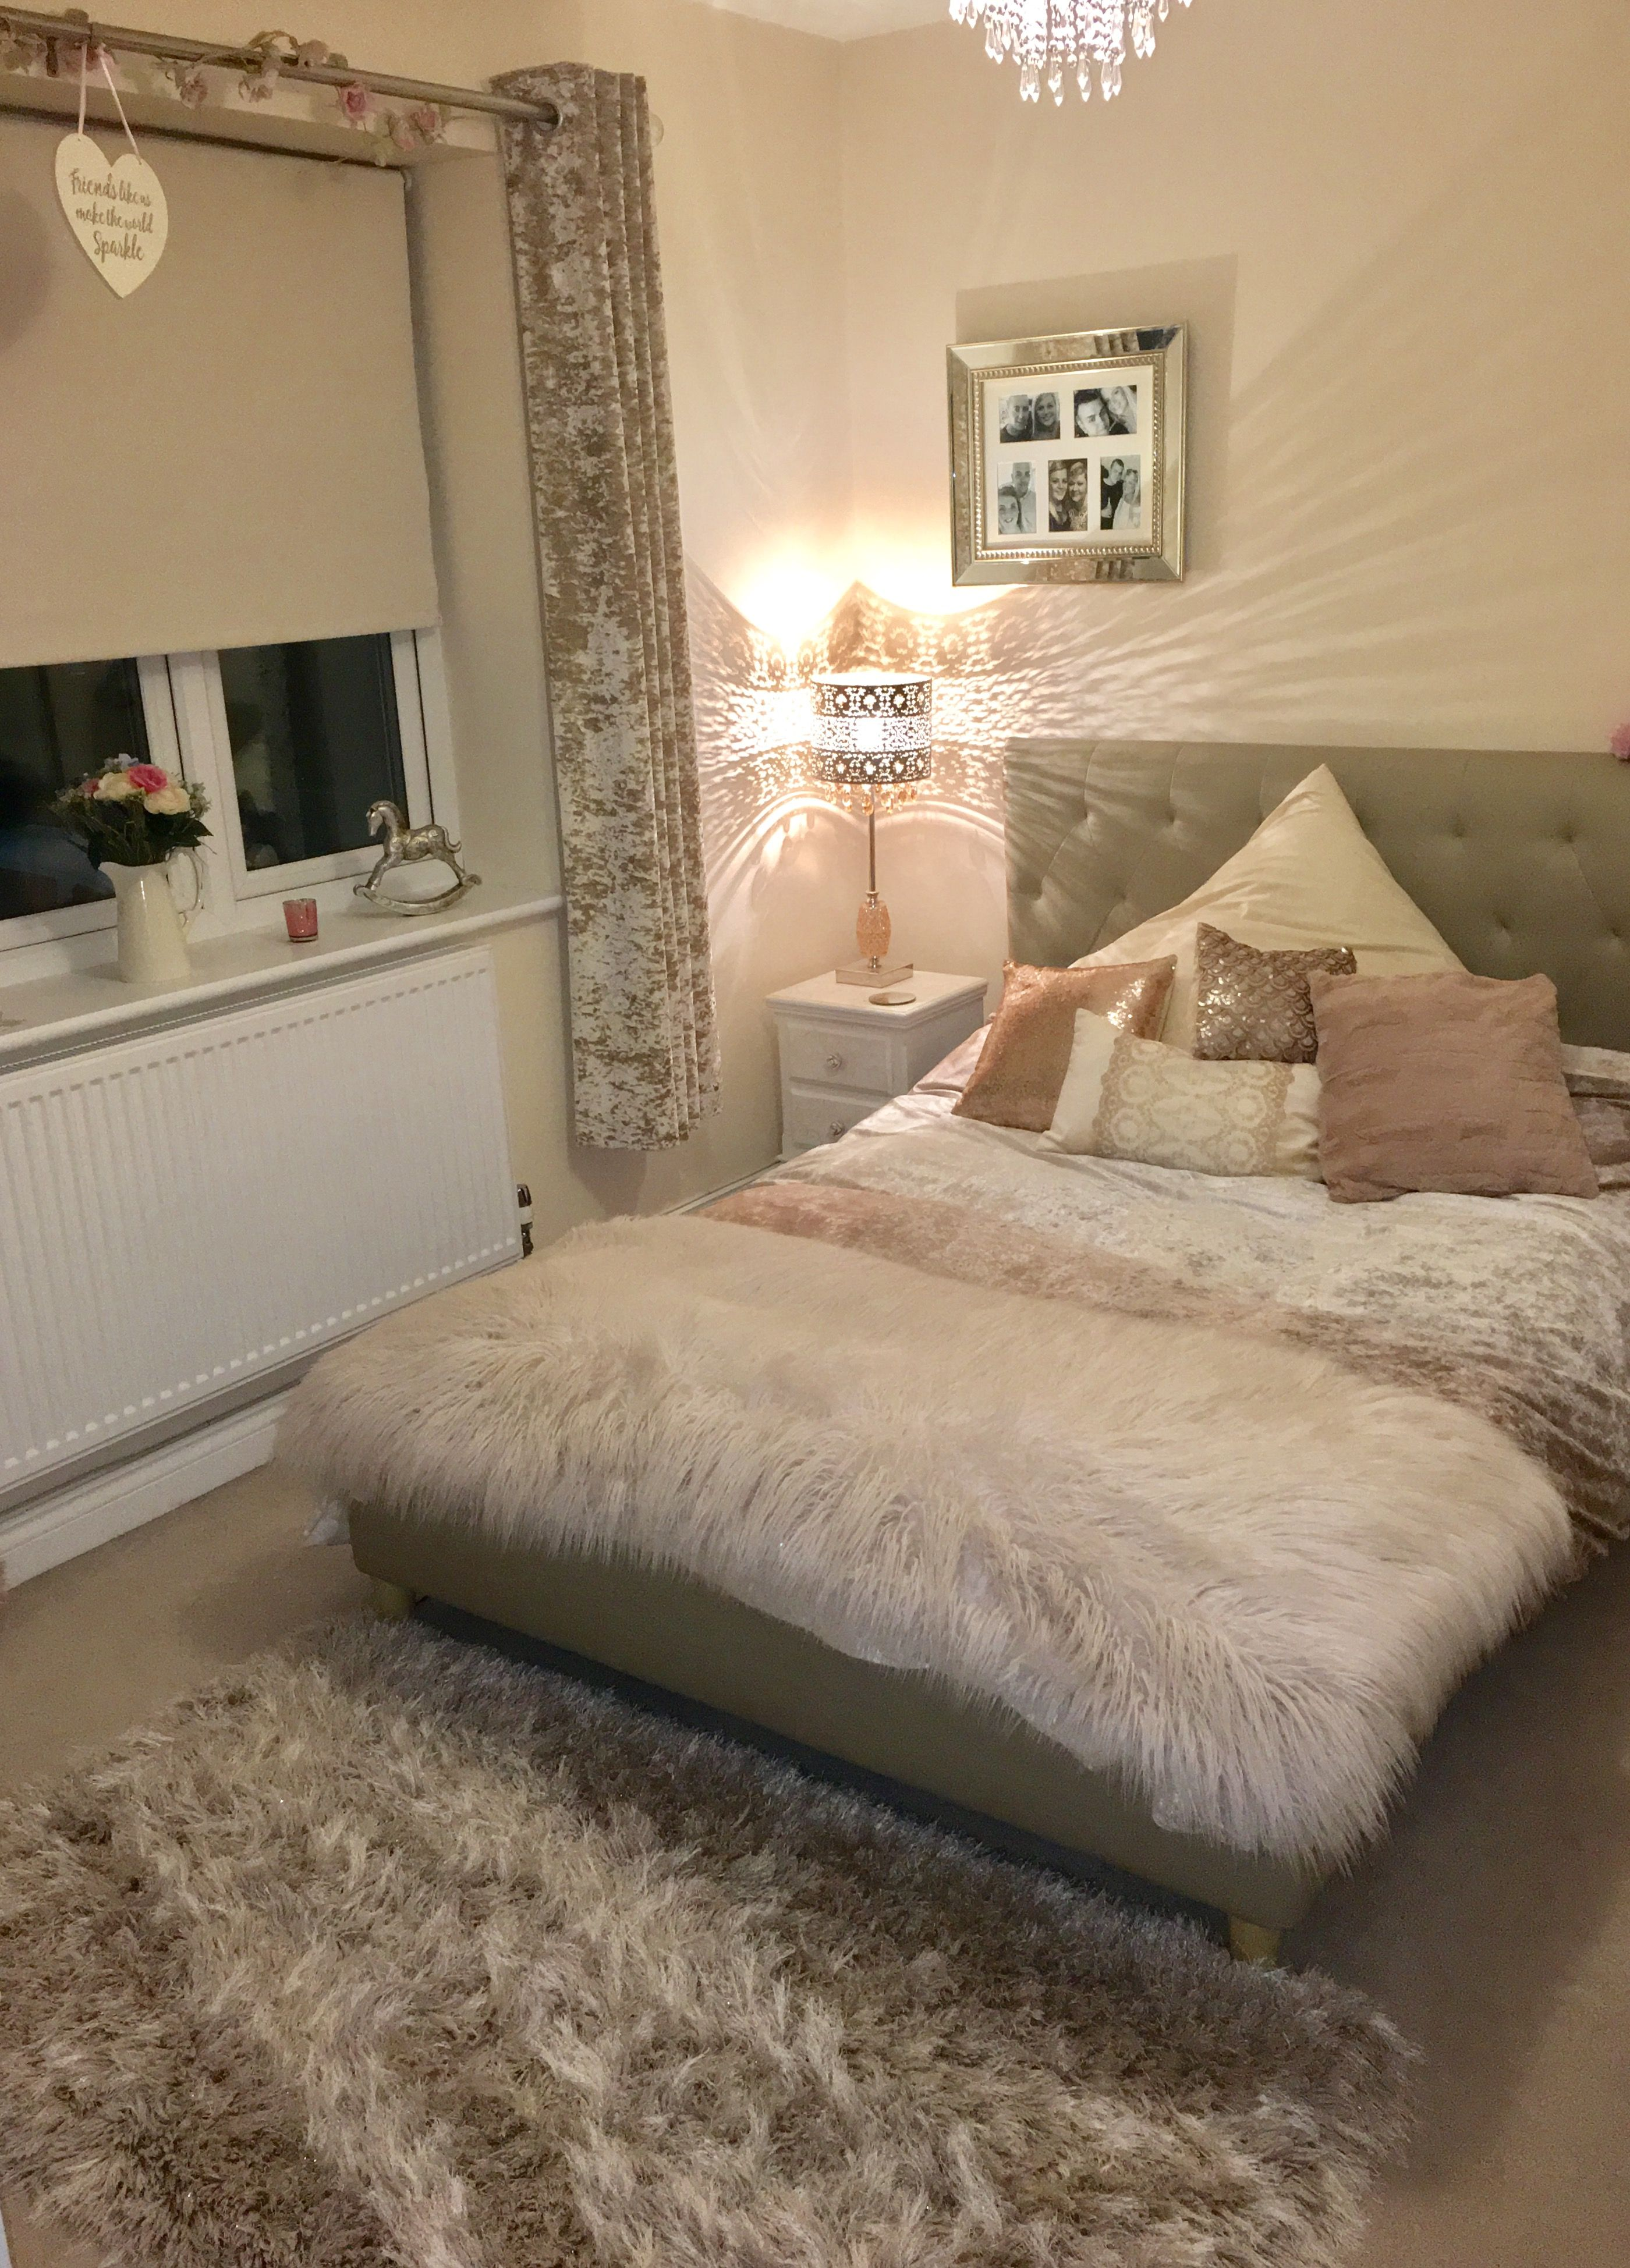 Bedroom Decorations Pinterest Pin By Brieana White On Home Inspo Bedroom Bedroom